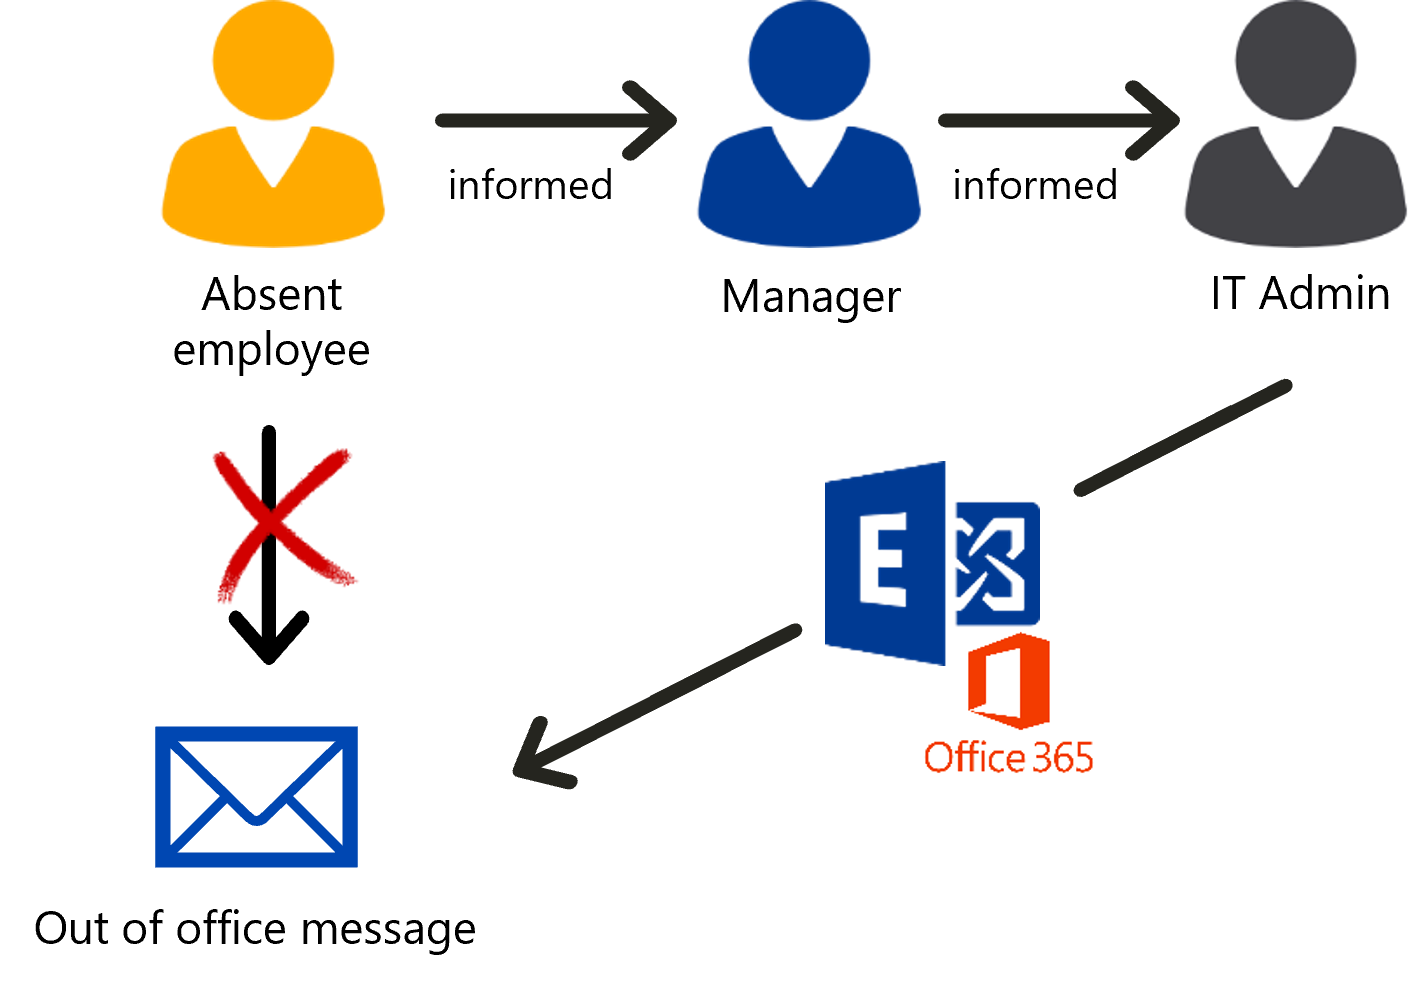 IT Admin set up Out of office with IDM-Portal